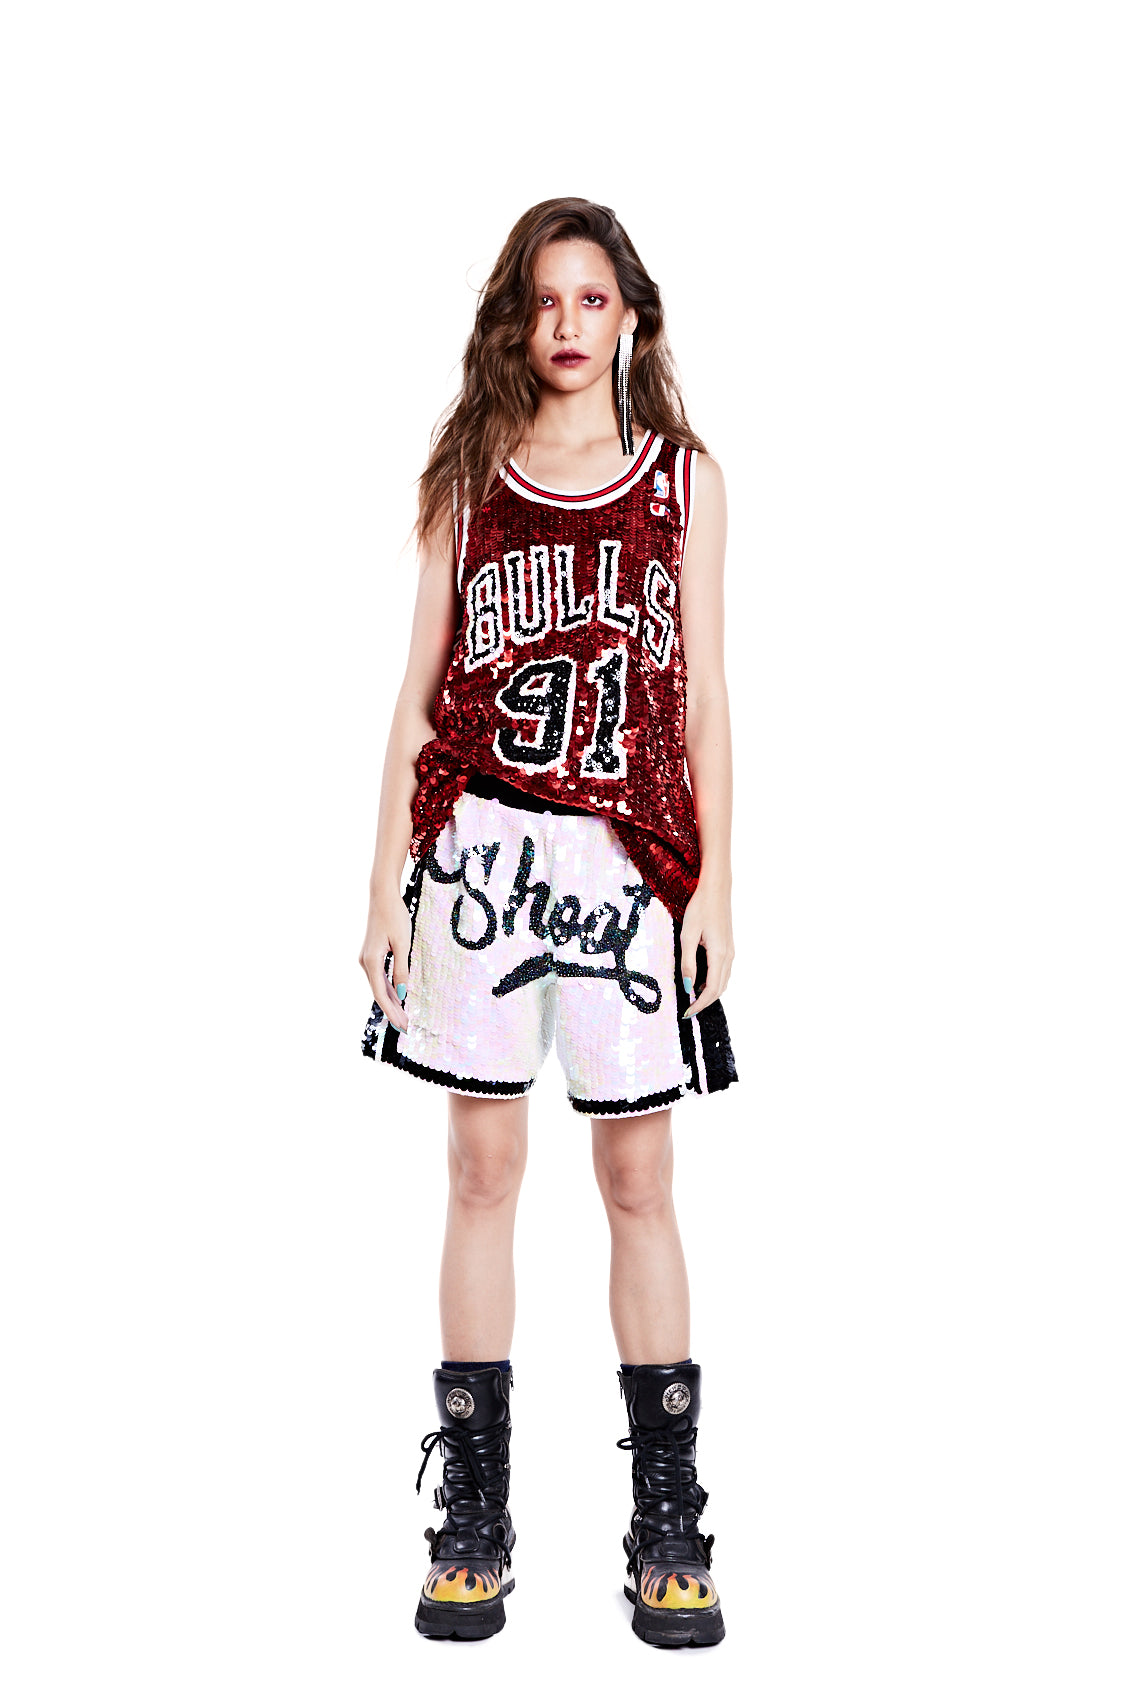 Chicago Bulls '91' Rodman Jersey Red - I LOVE DIY by Panida